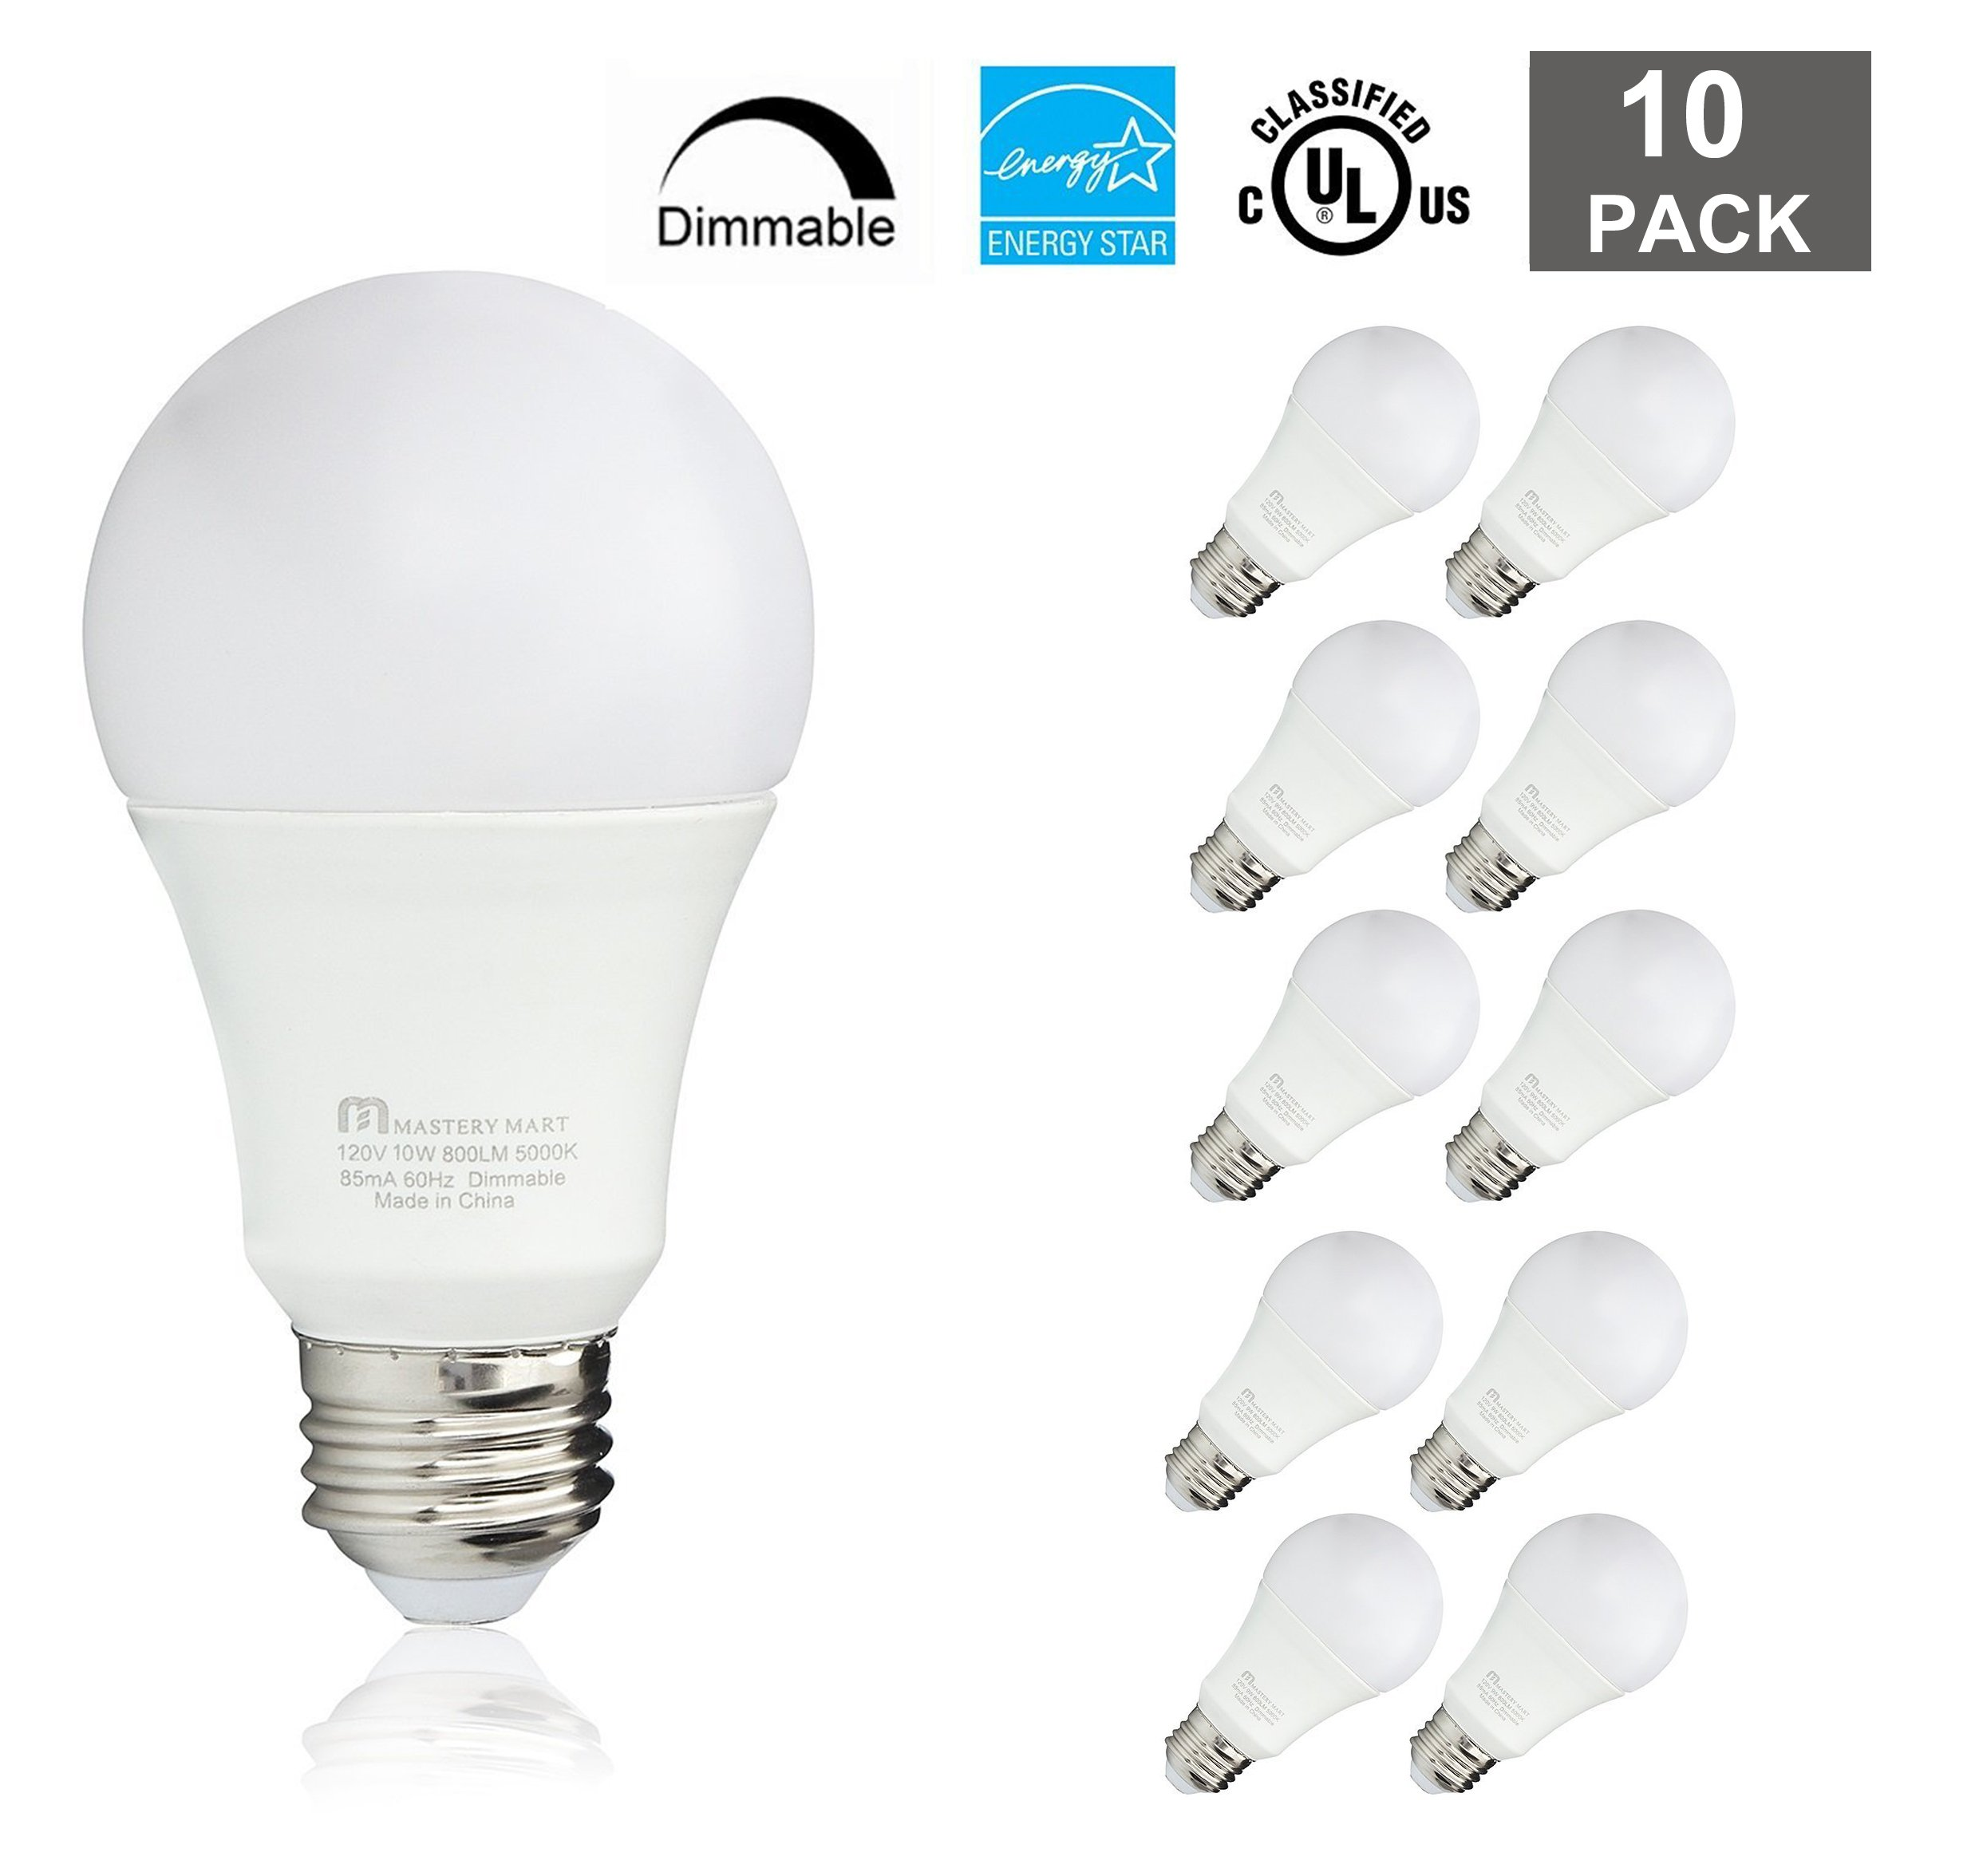 Led Light Bulbs 10 Watt [60 Watt Equivalent], A19 - E26 Dimmable, 5000K Daylight White, 800 Lumens, Medium Screw Base, Energy Star, UL Listed by Mastery Mart (Pack of 10)